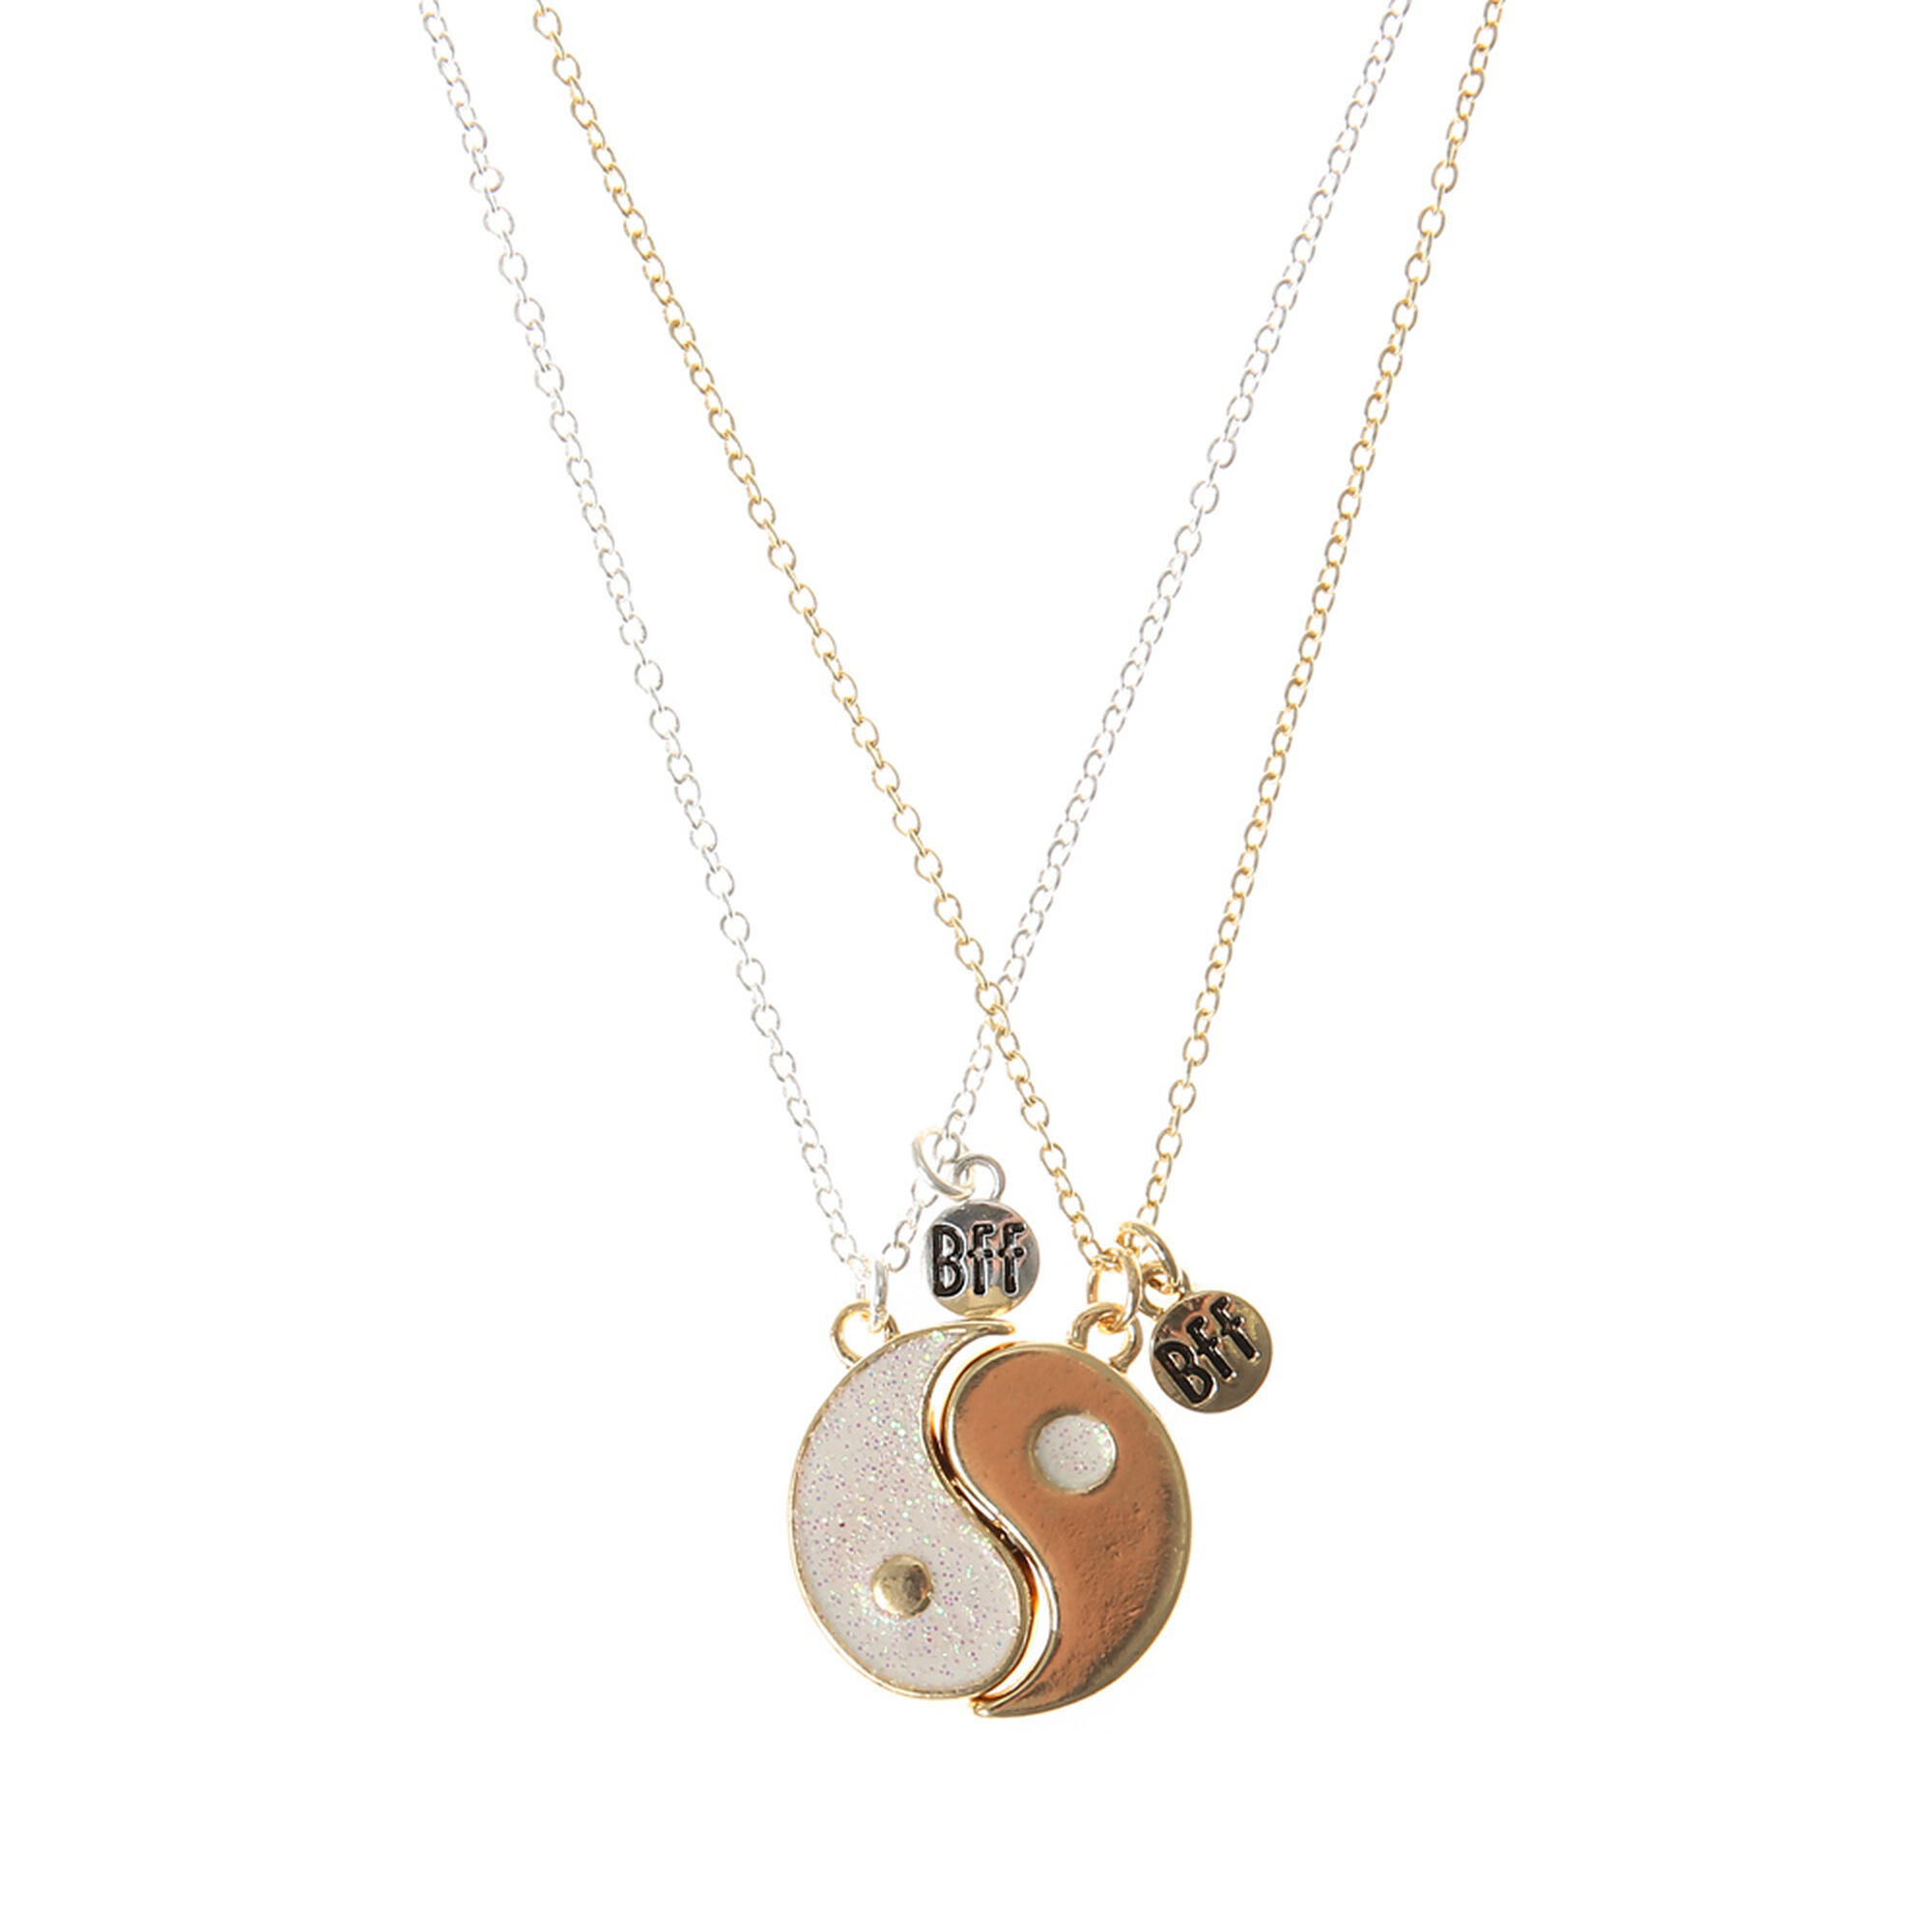 goddess collections yang hunt f yin v i necklace orchard fall moon t a o r stone e s favorites